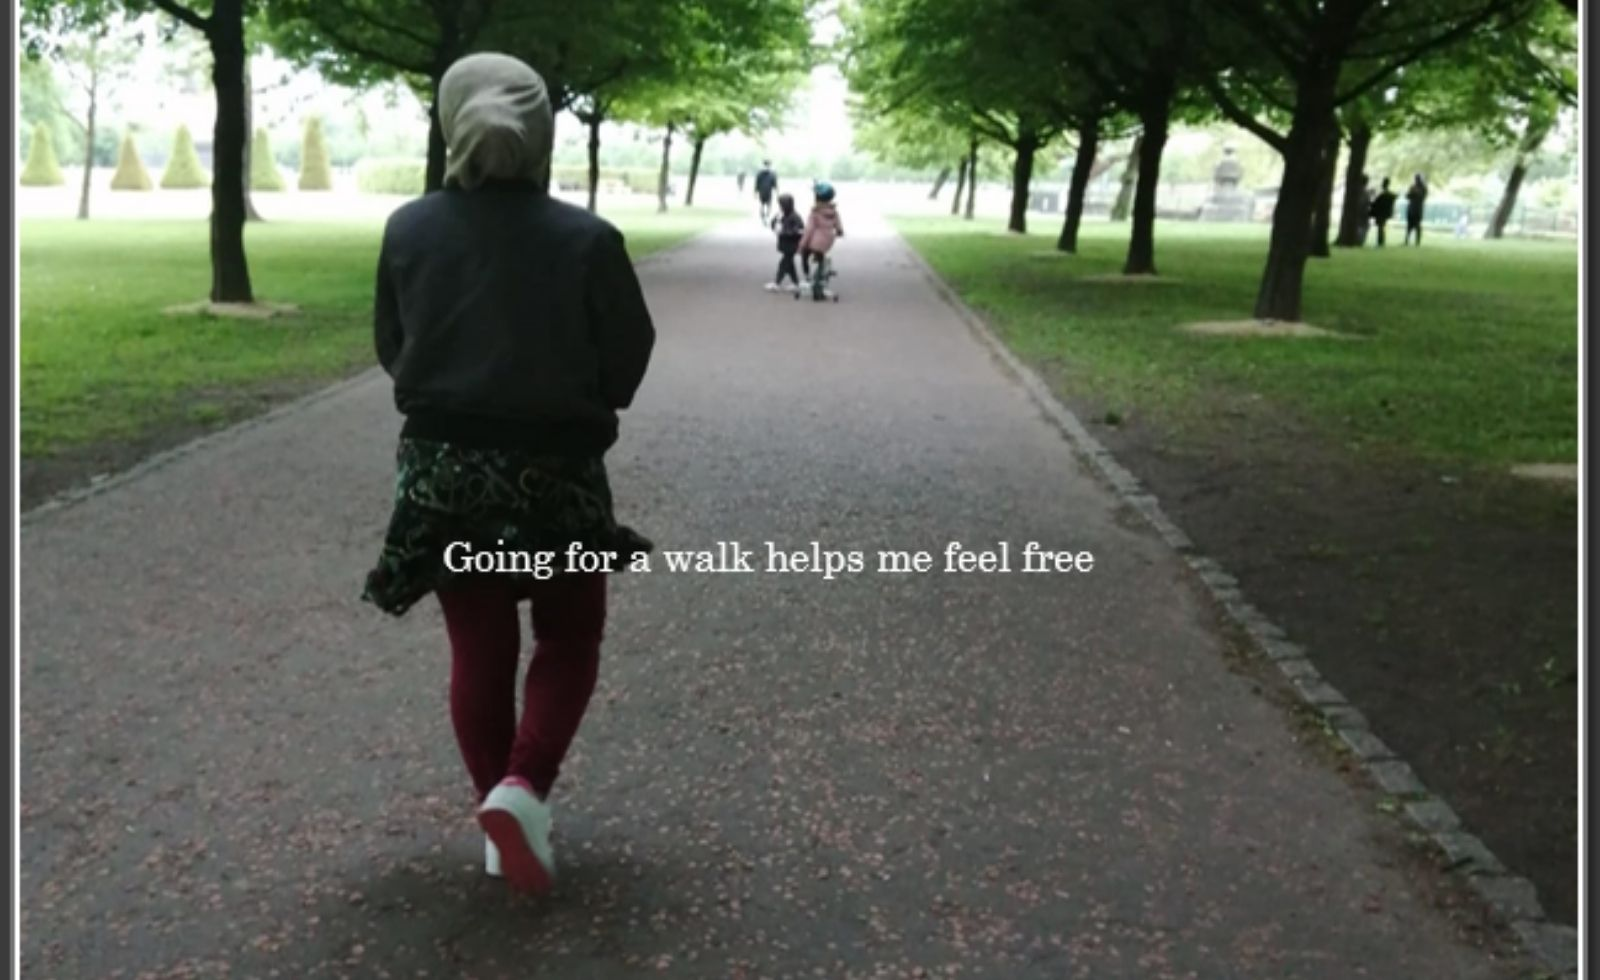 A women walking in the park. Her childing are playing further up the path.